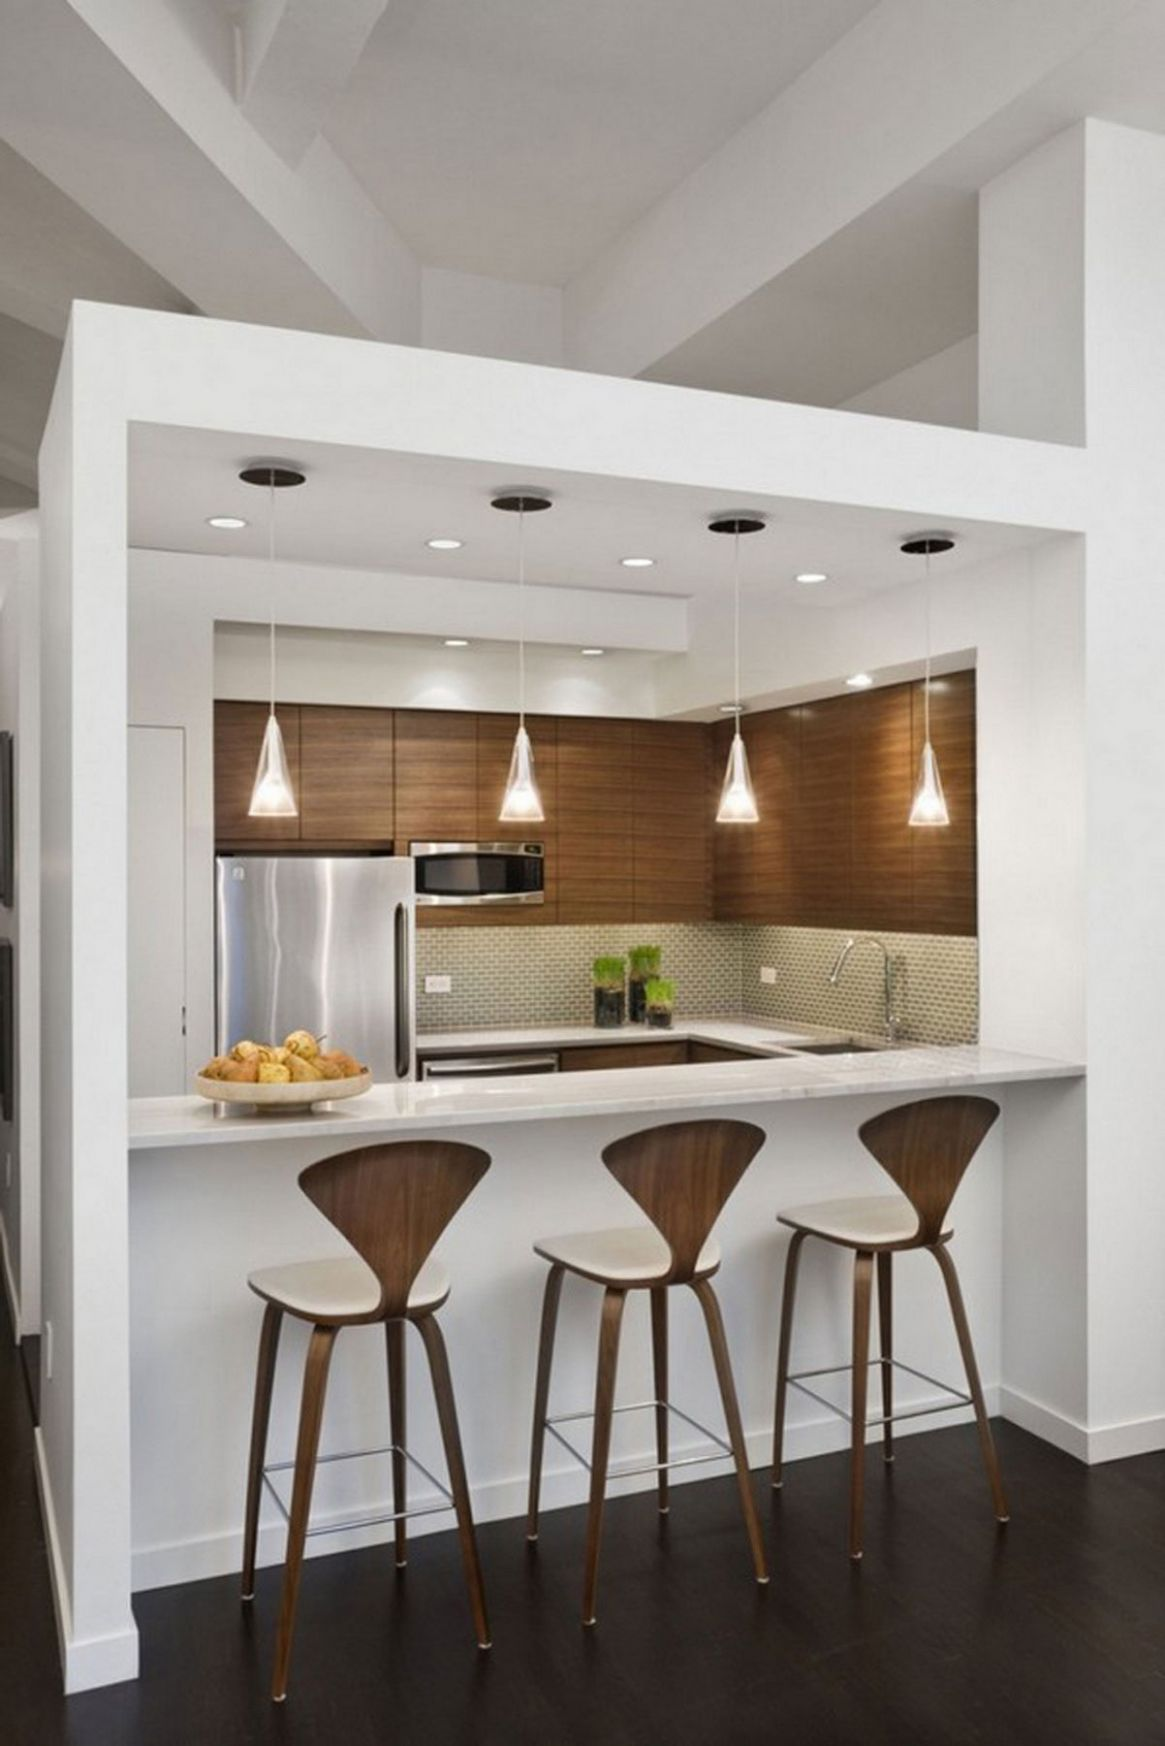 10 Best Small Kitchen Ideas and Designs for 10 - kitchen ideas simple